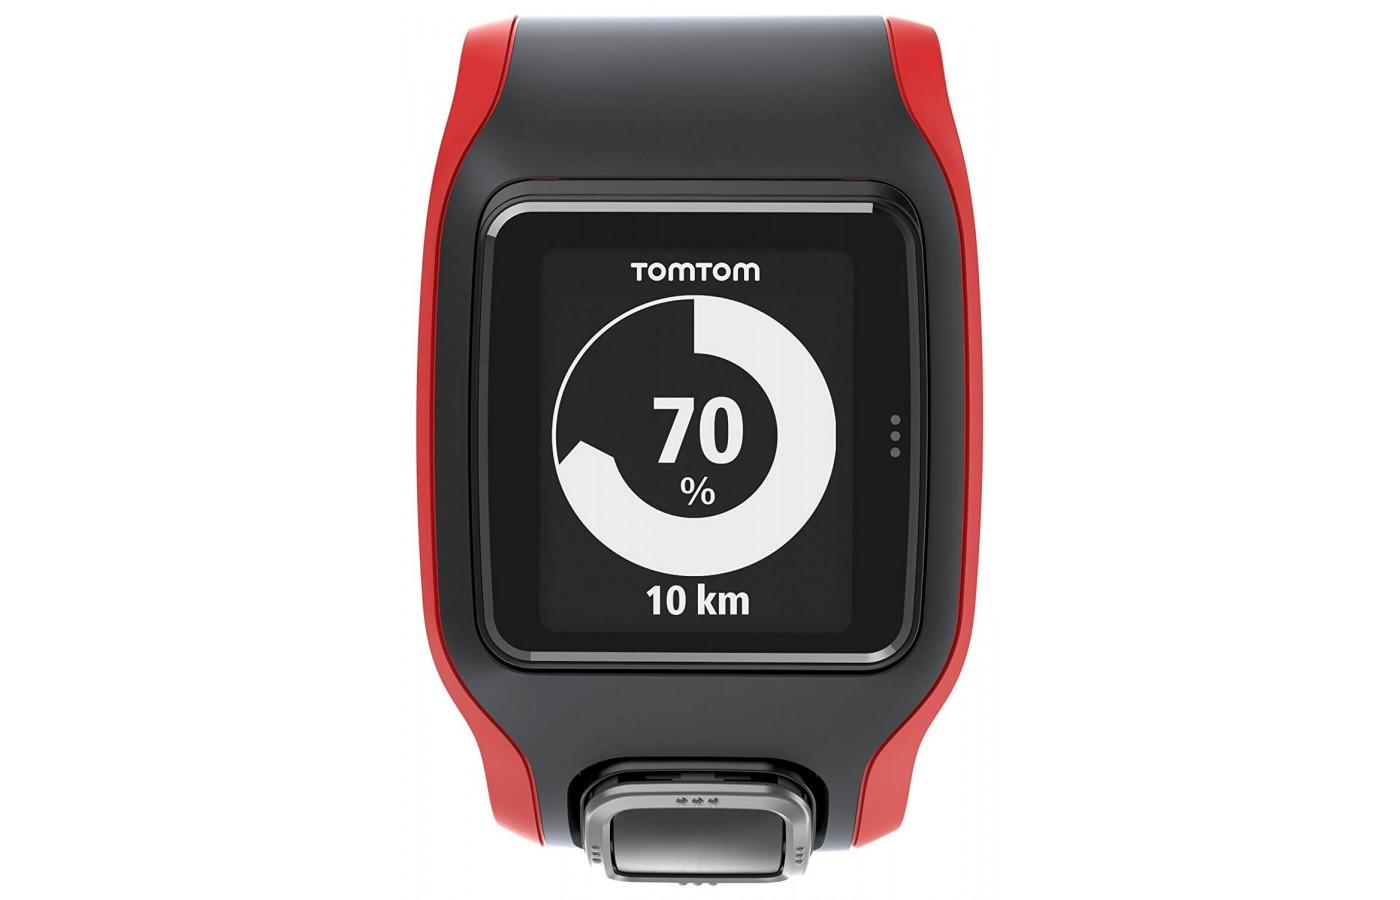 TomTom Multisport has great connectivity